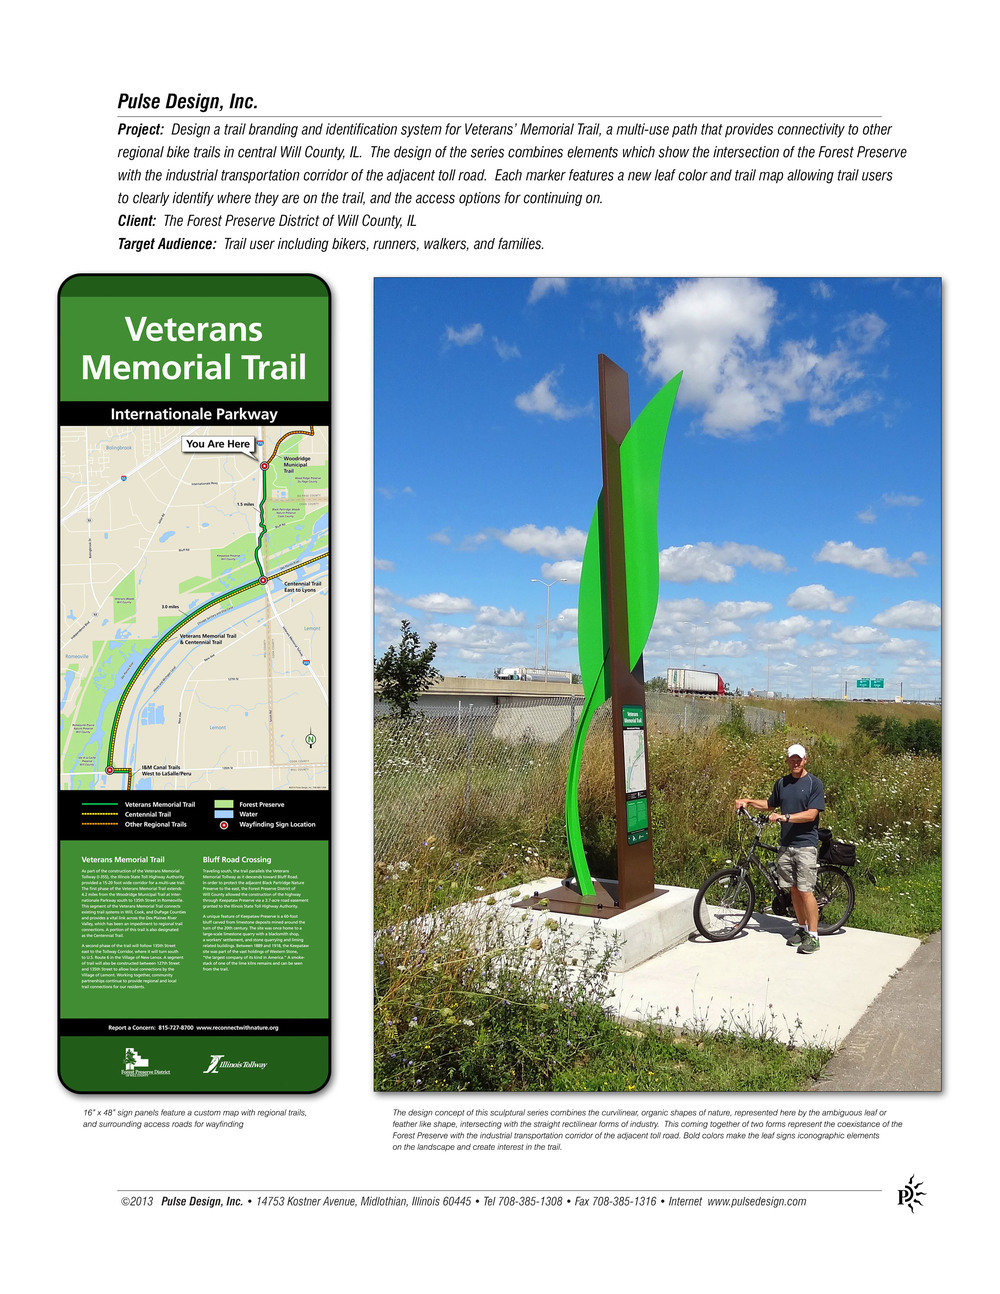 Veterans-Memorial-Trail-Sign-Photo-Green-Pulse-Design-Inc.jpg